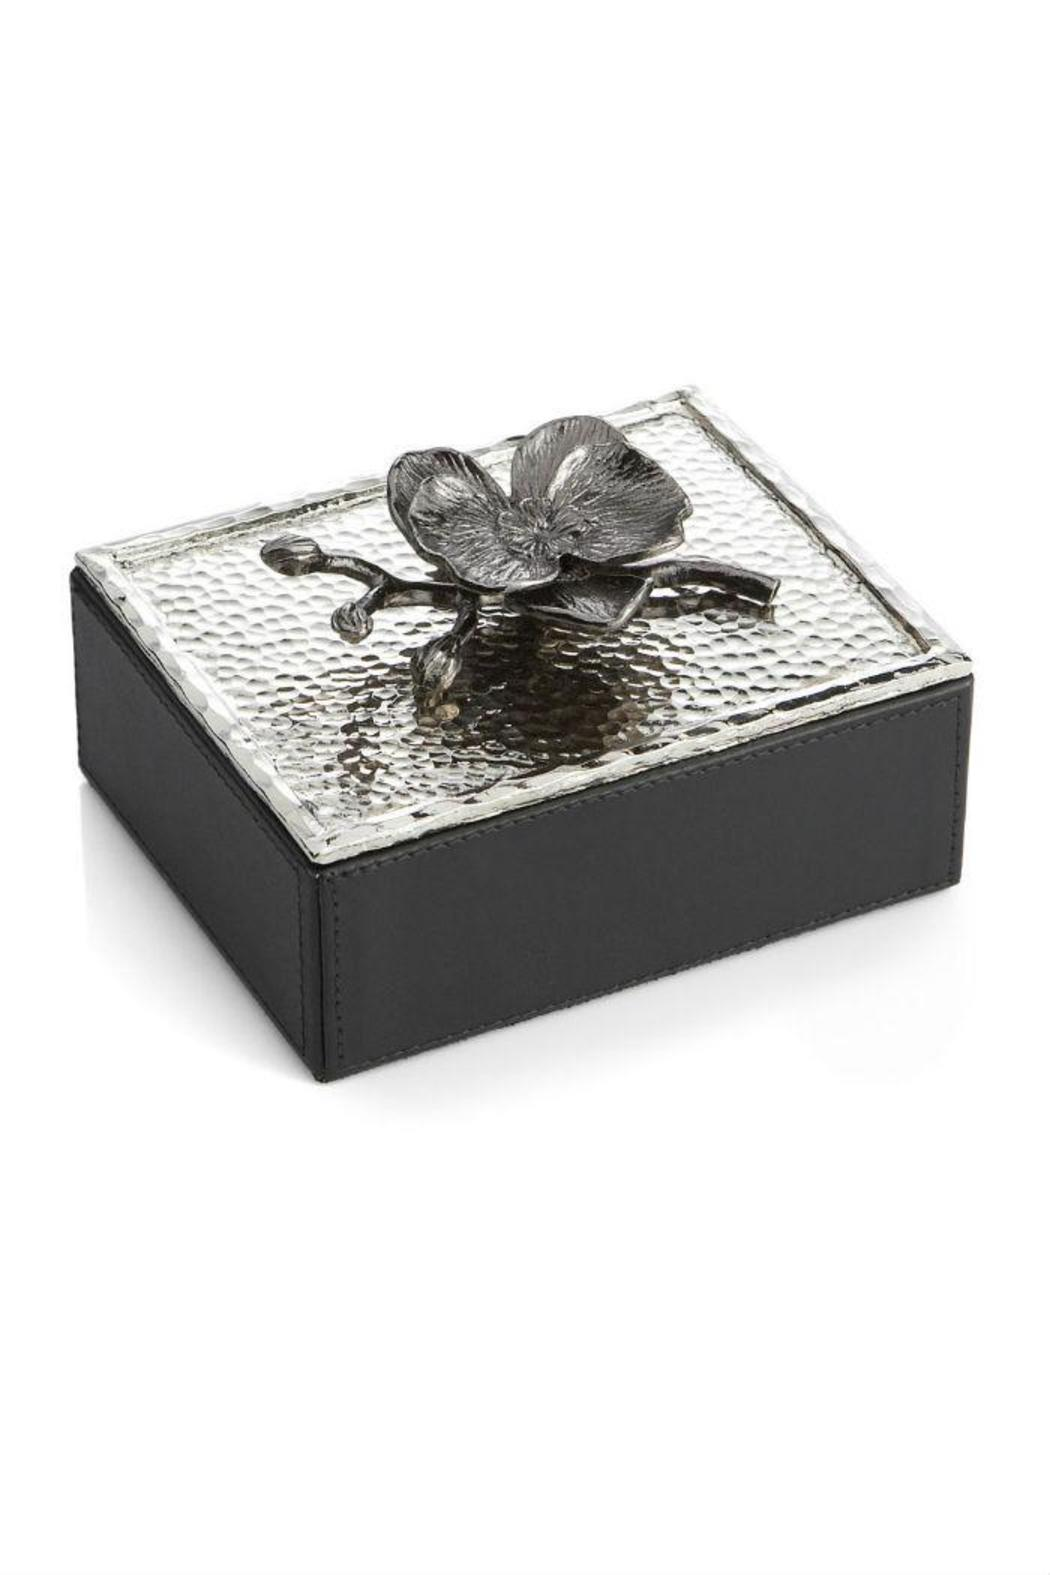 Michael Aram Mini Jewelry Box from New Jersey by The Image Gallery